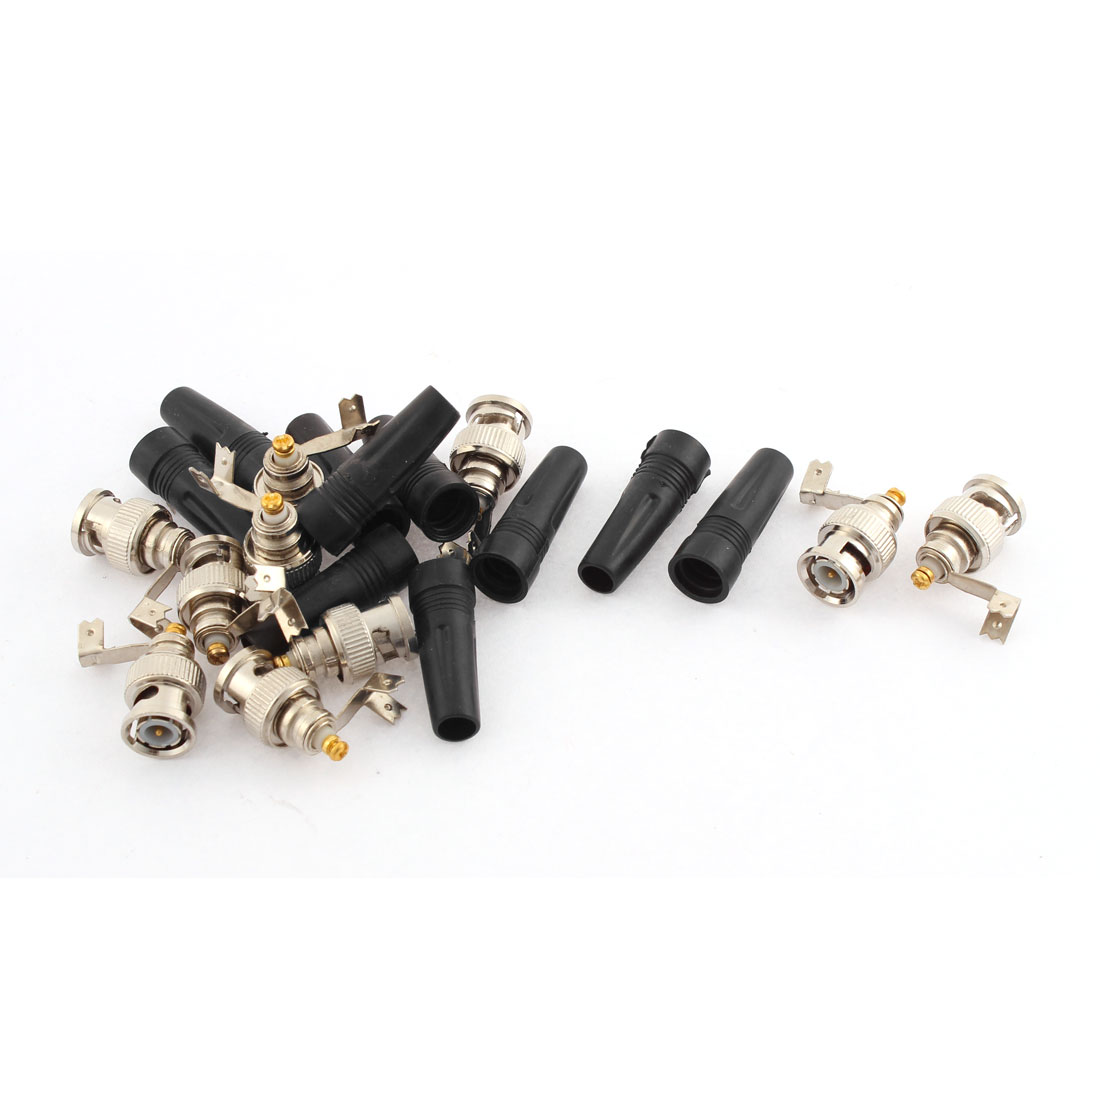 10 Pcs Straight BNC Male Connector Adapter + Plastic Sleeve Cover